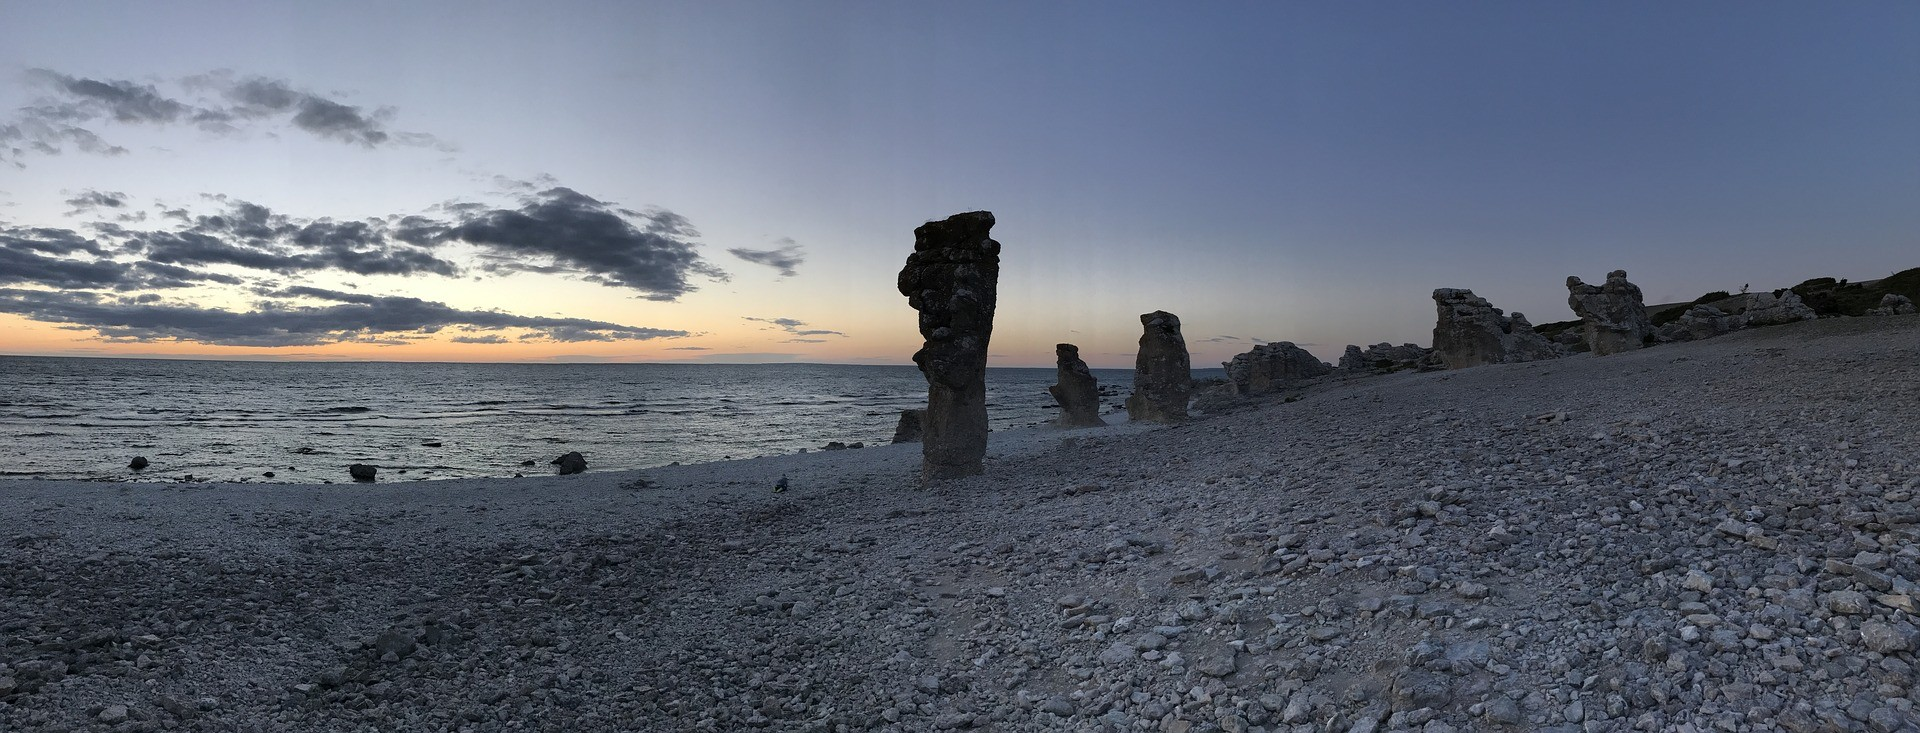 Best Places to Visit in Northern Europe - Gotland Island